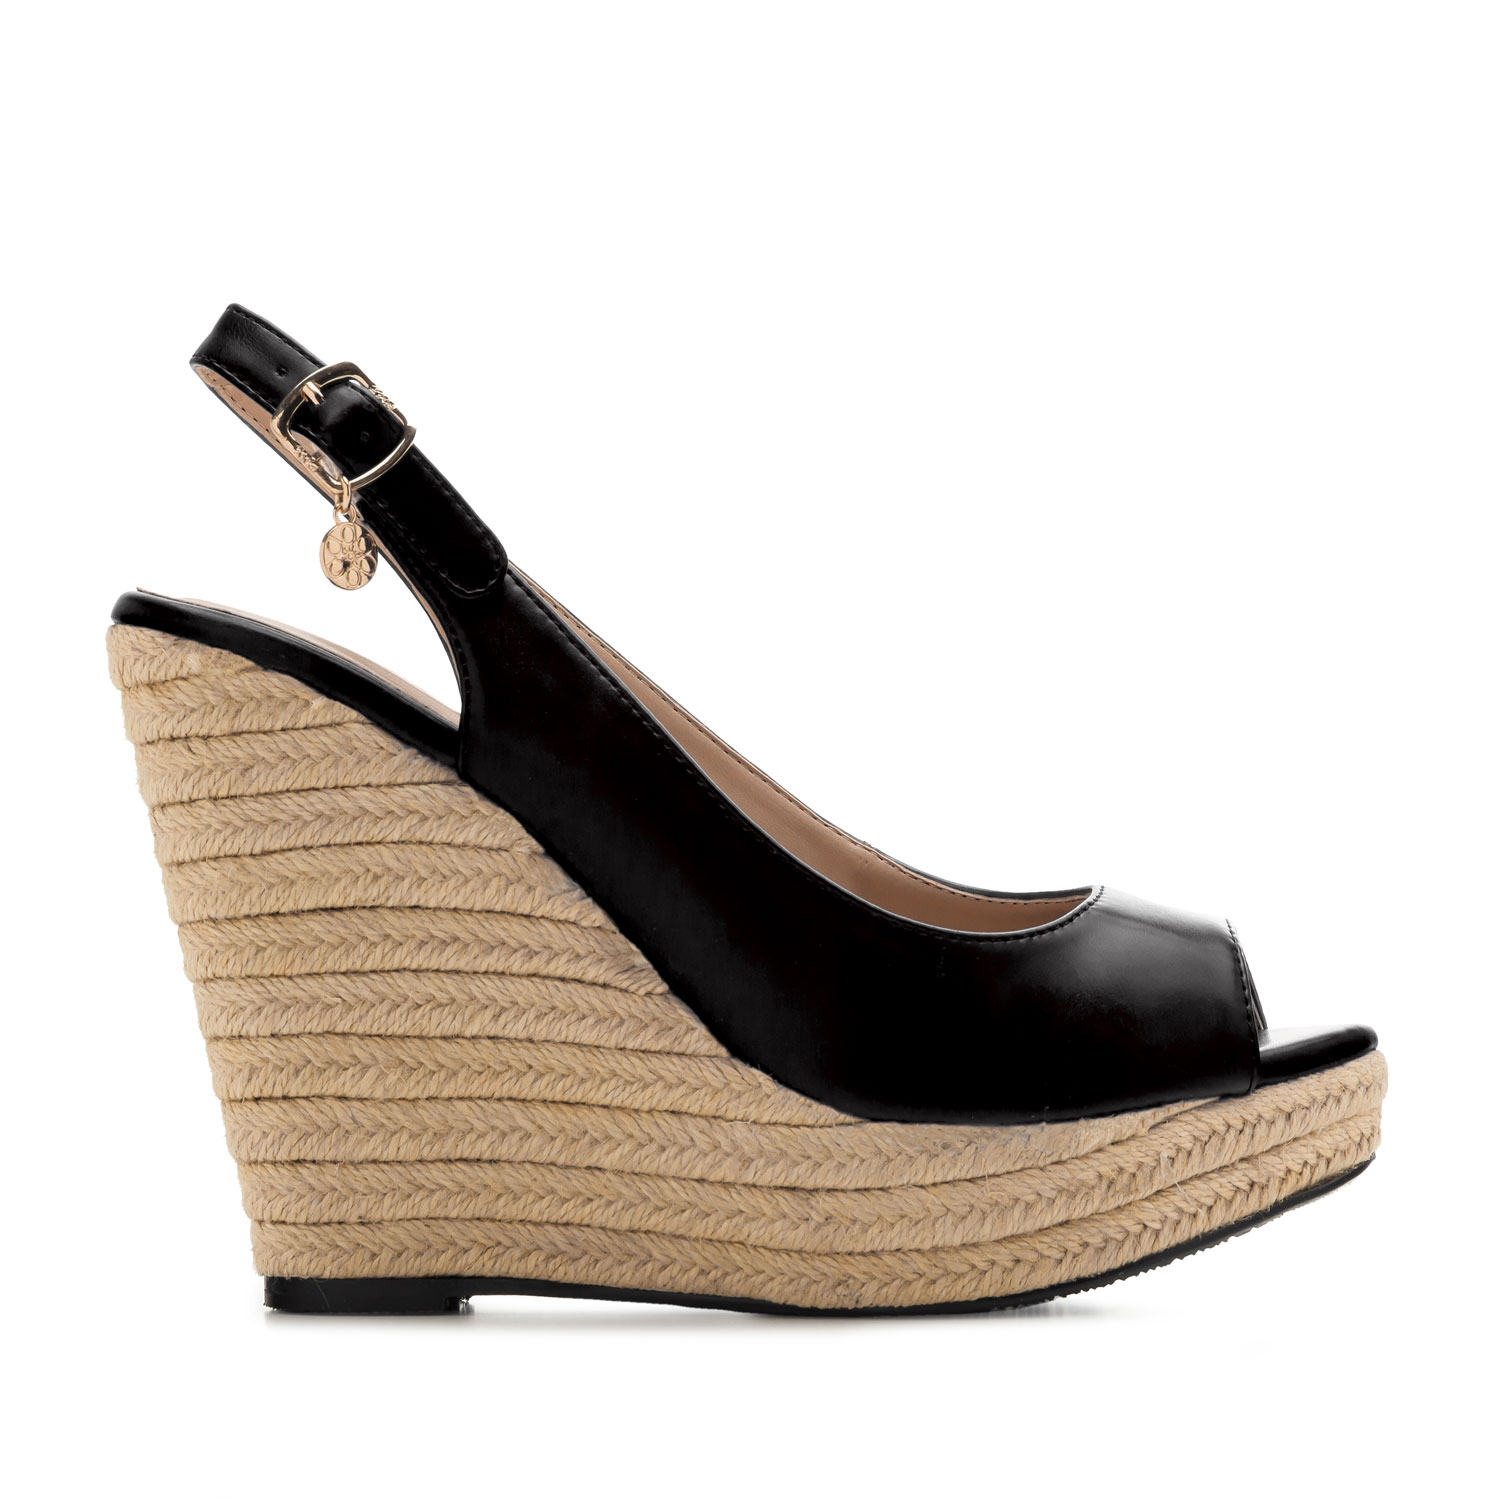 Jute Wedges in Black faux Leather